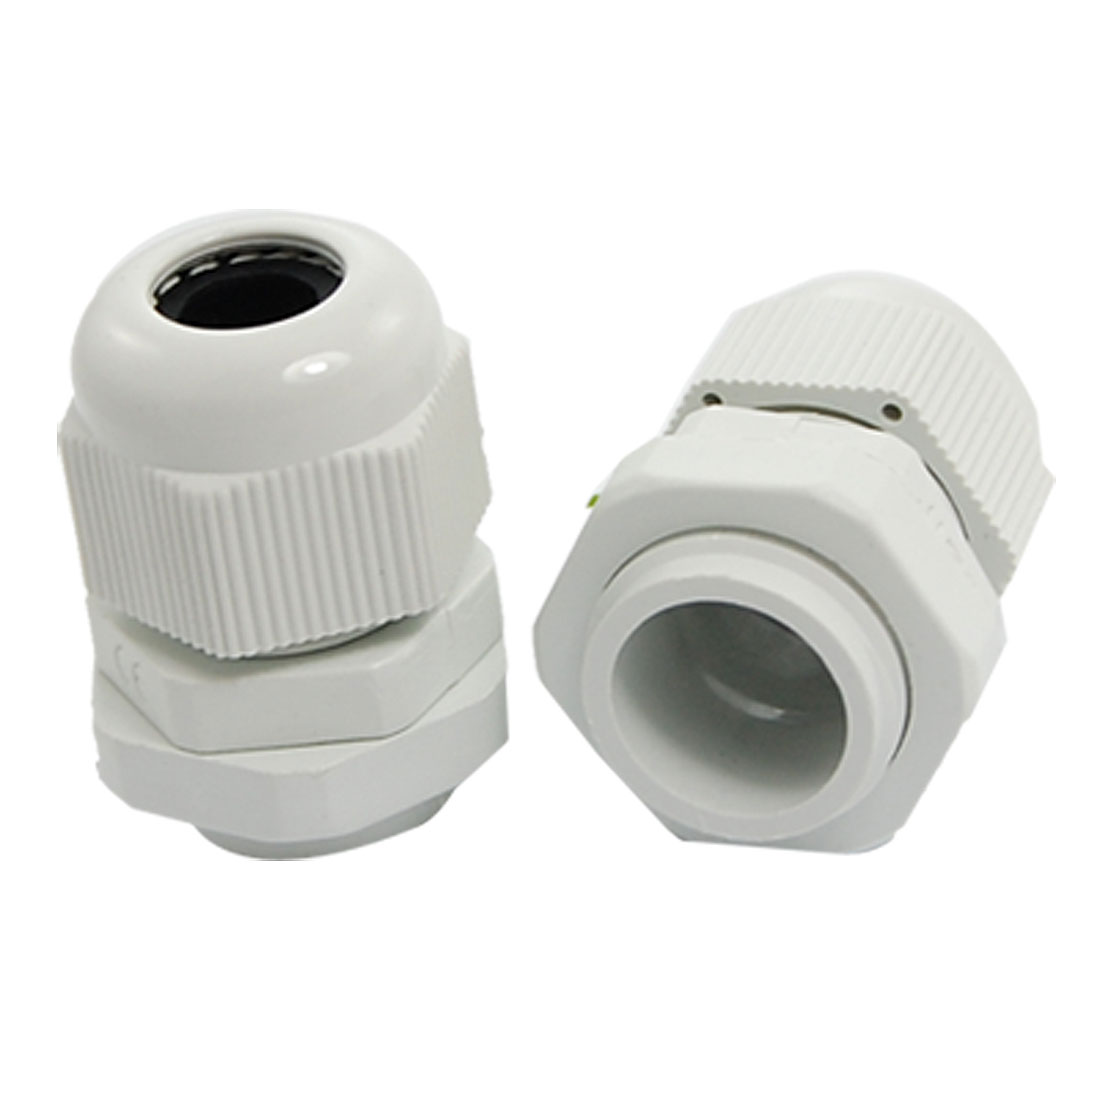 2 Pcs Waterproof PG11 White Plastic Cable Gland Connectors